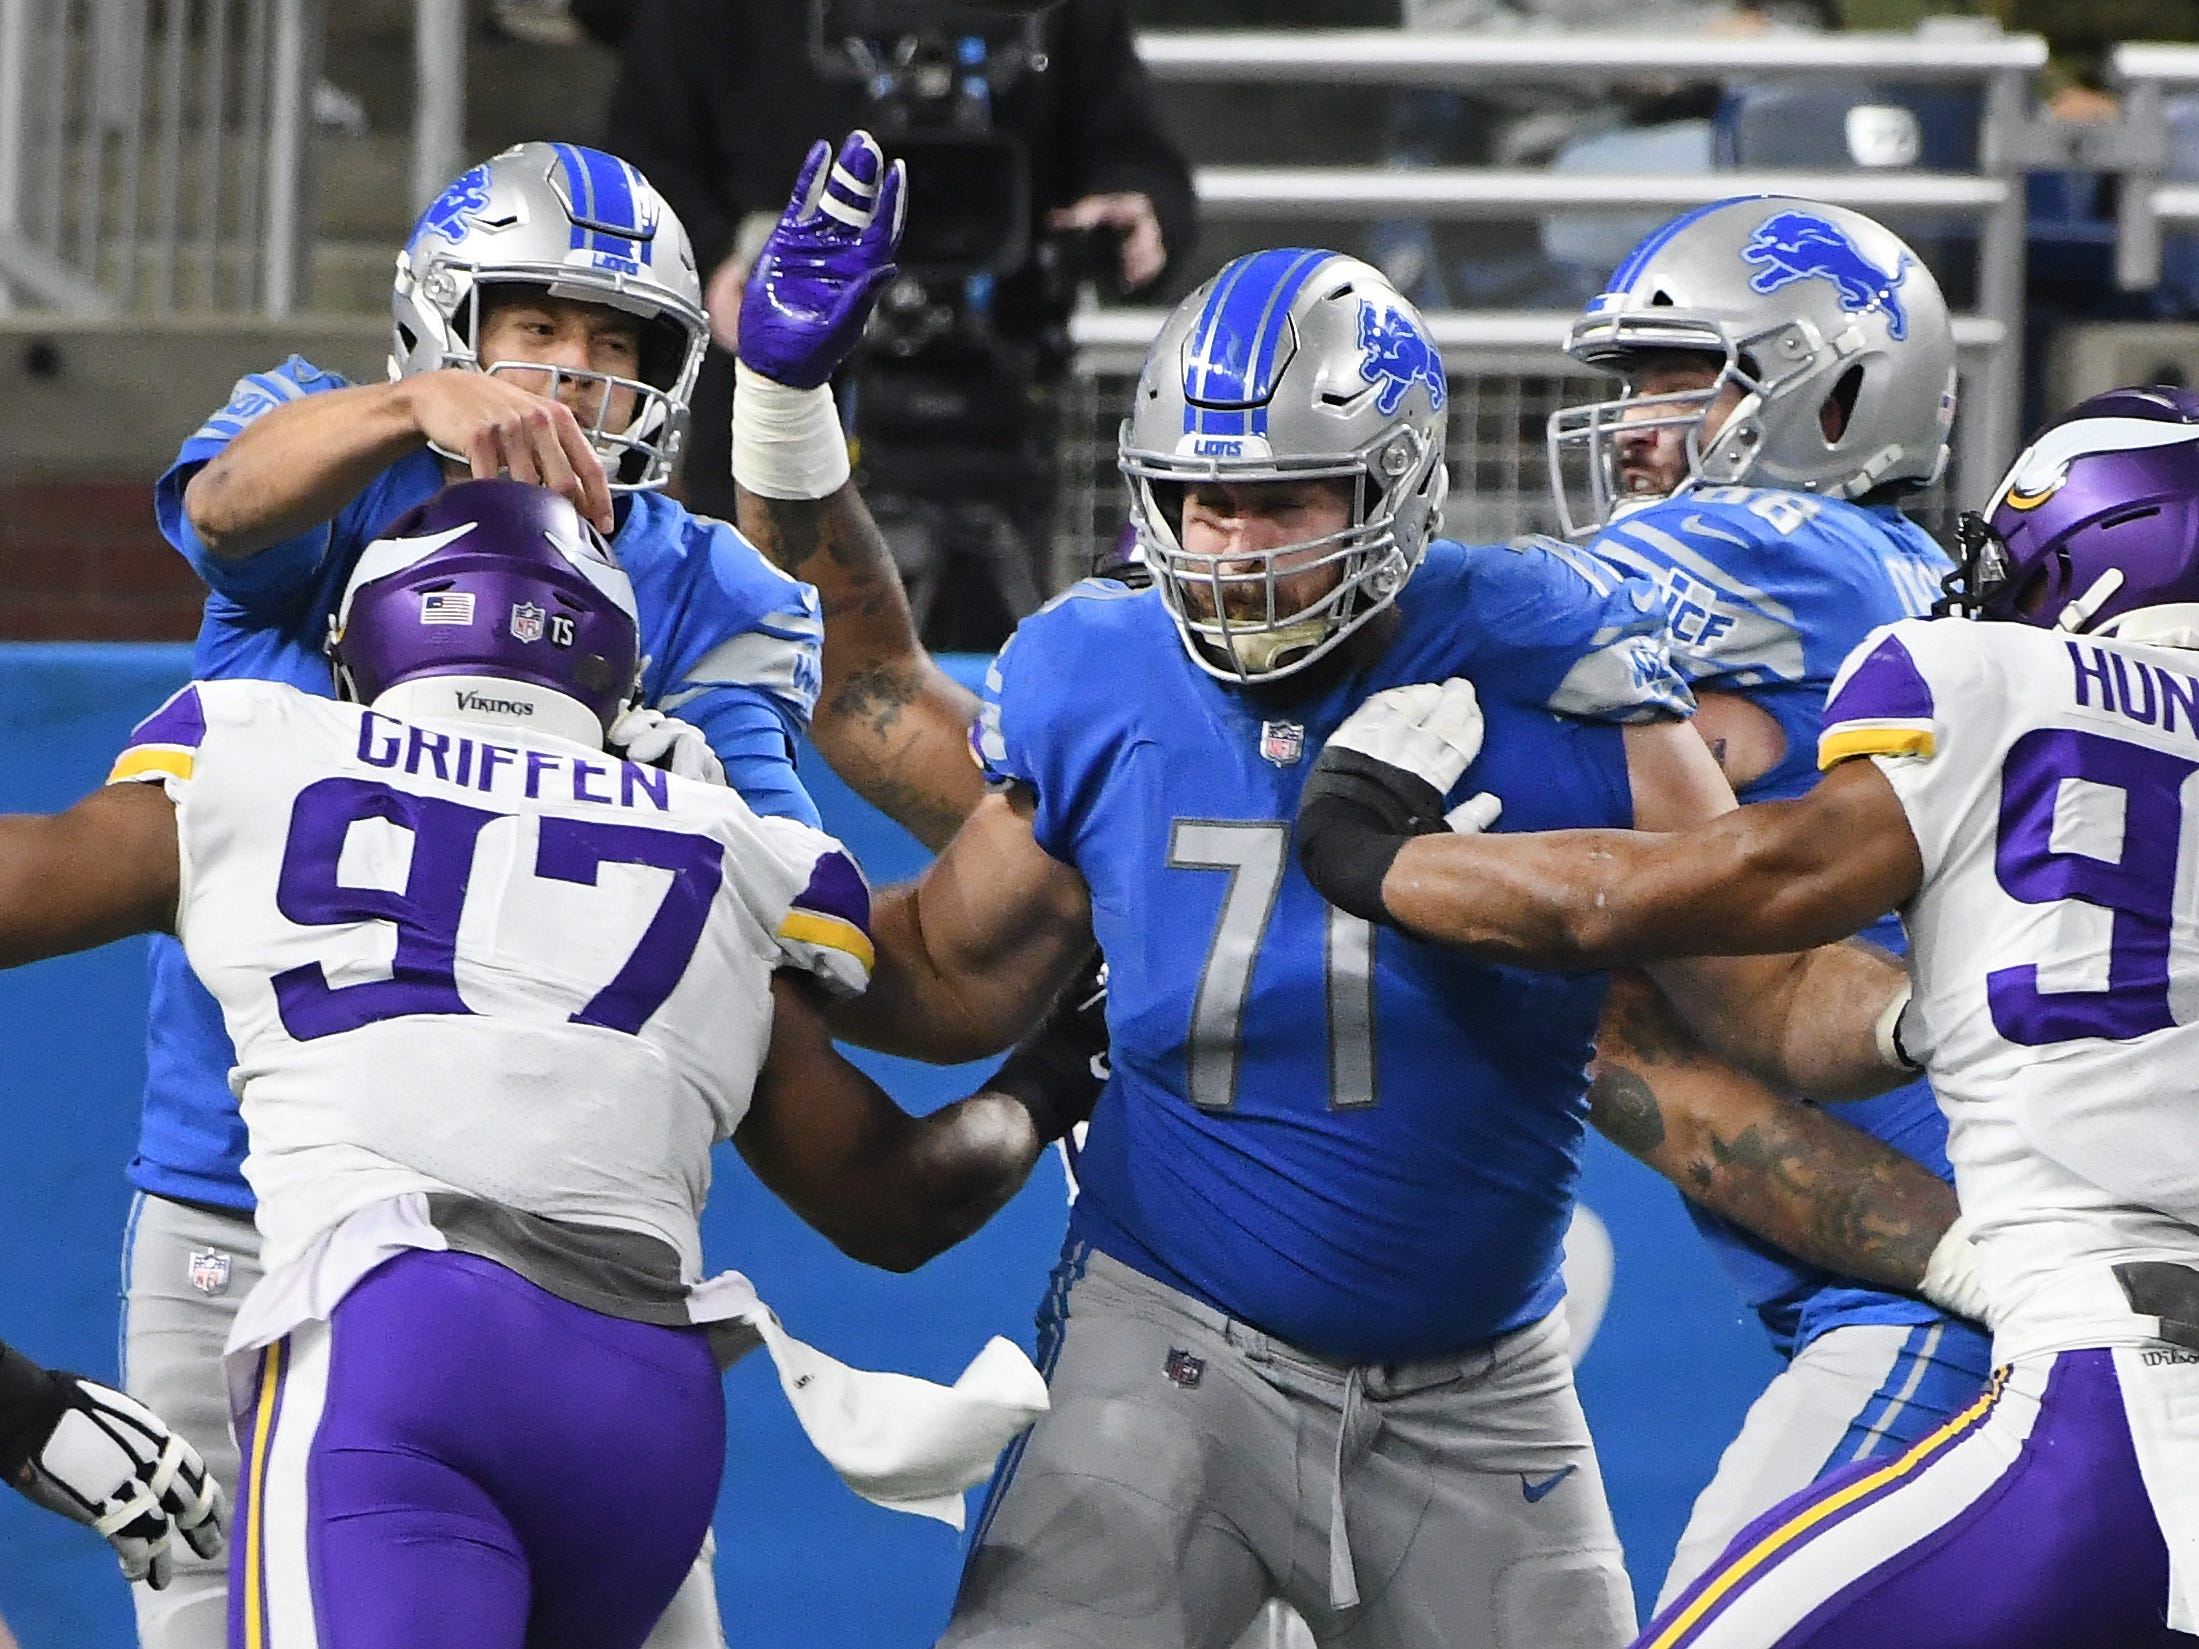 OT Rick Wagner: Wagner was the better run blocker of Detroit's two tackles, but he allowed just as much pressure from Stafford's right side. Even worse, eight of those pressures resulted in sacks, ranking him in the bottom-10 among tackles at keeping his quarterback upright.  Grade: C-